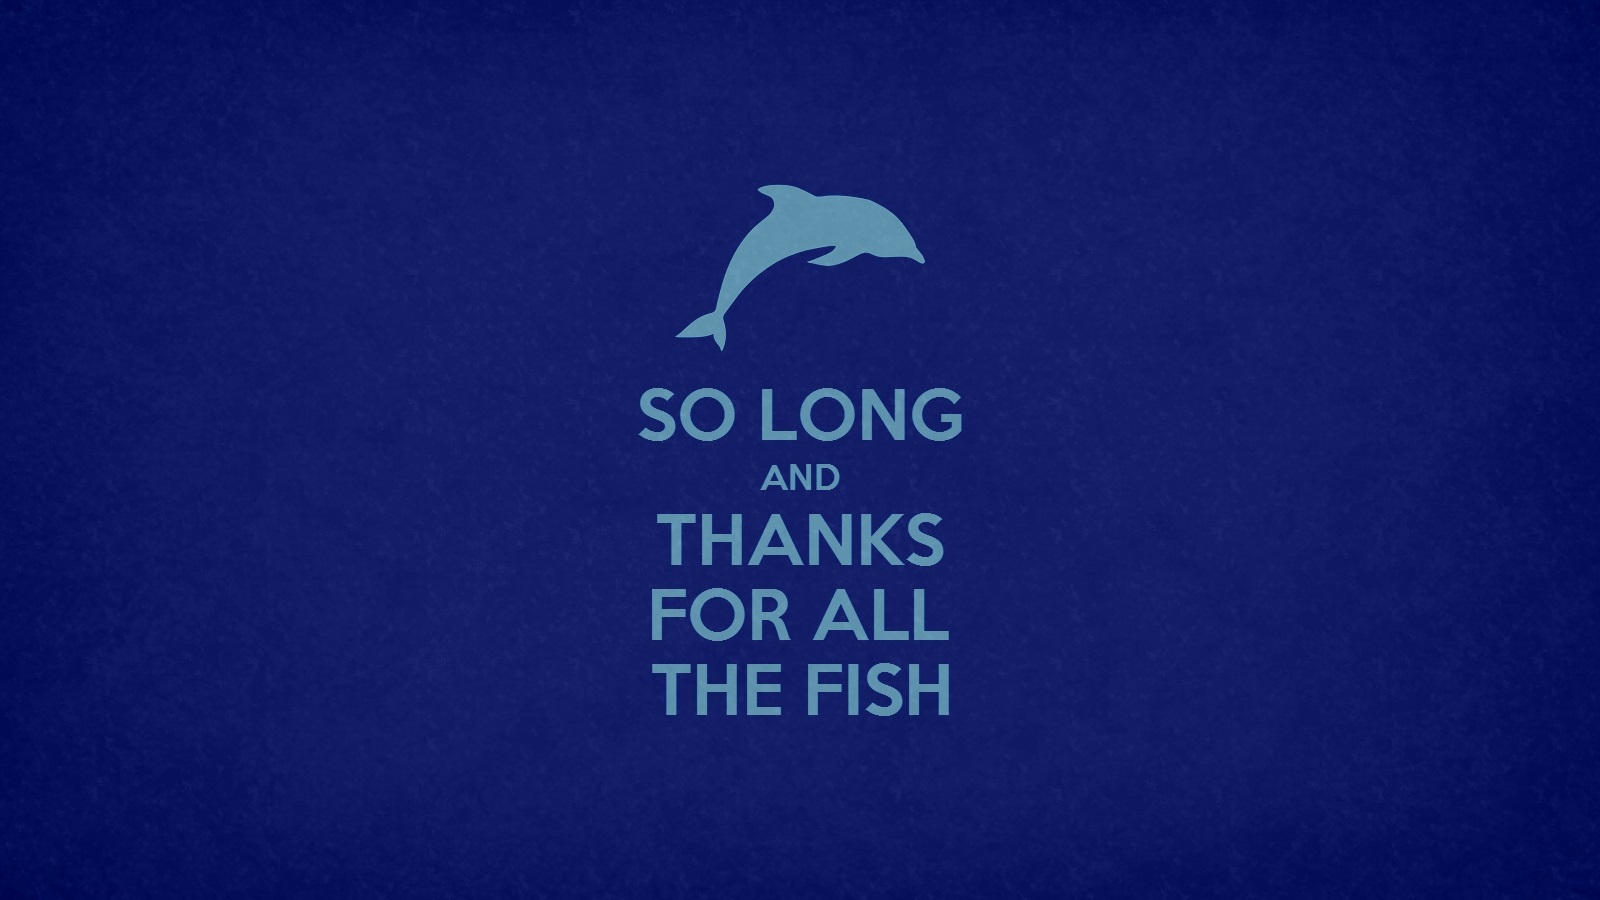 so long and thanks for all the fish by orangeman80 on